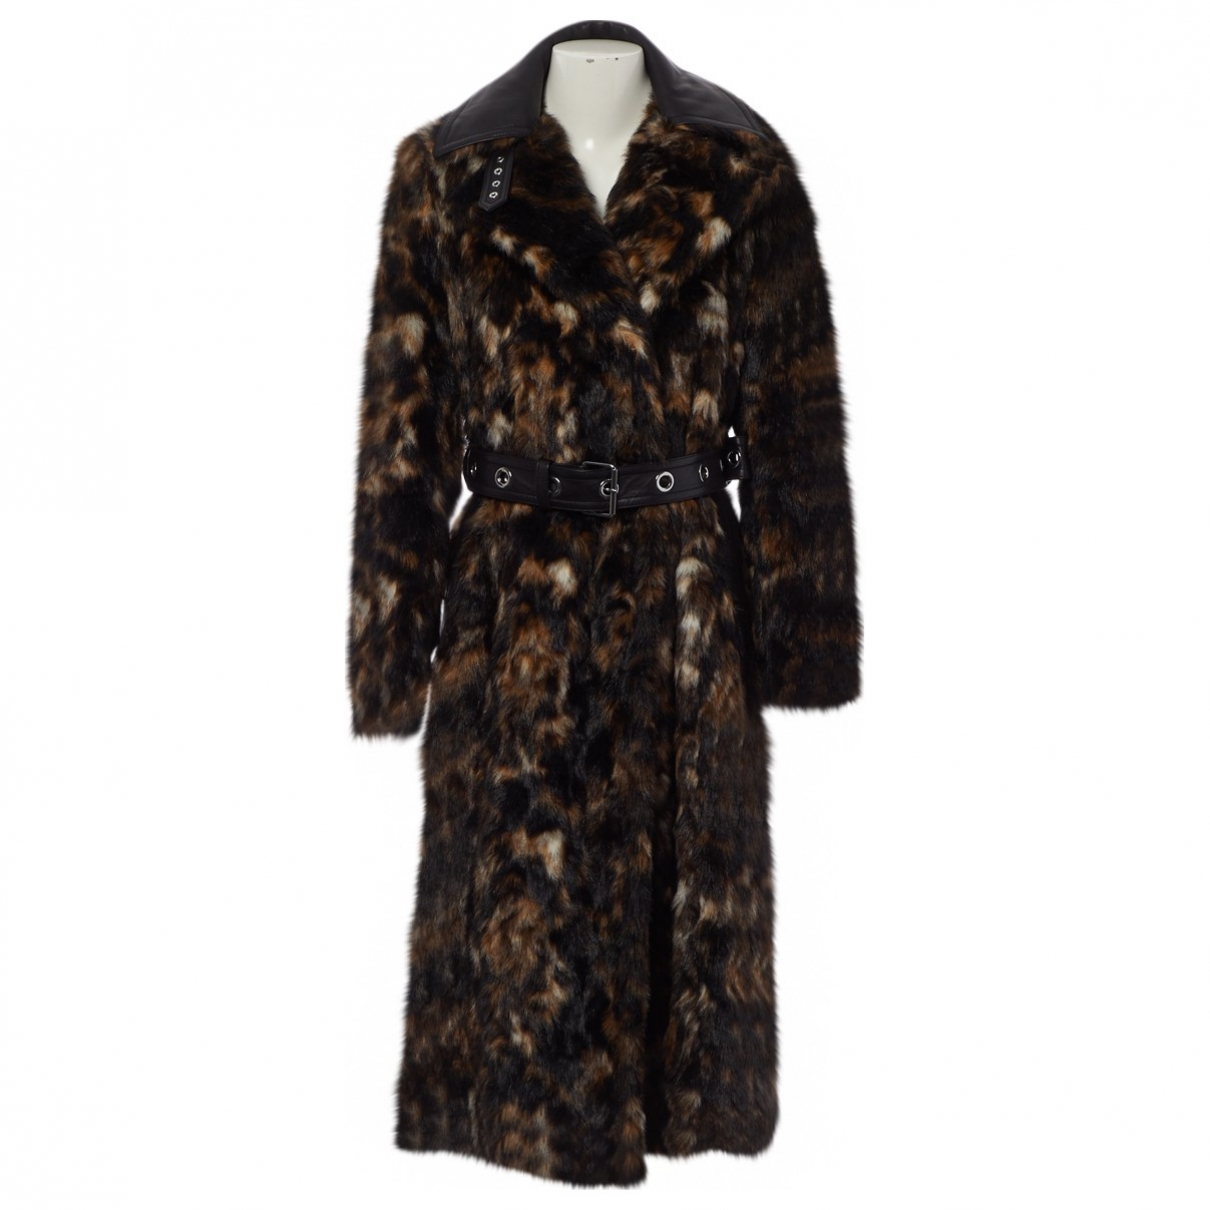 Helmut Lang \N Brown Faux fur coat for Women S International